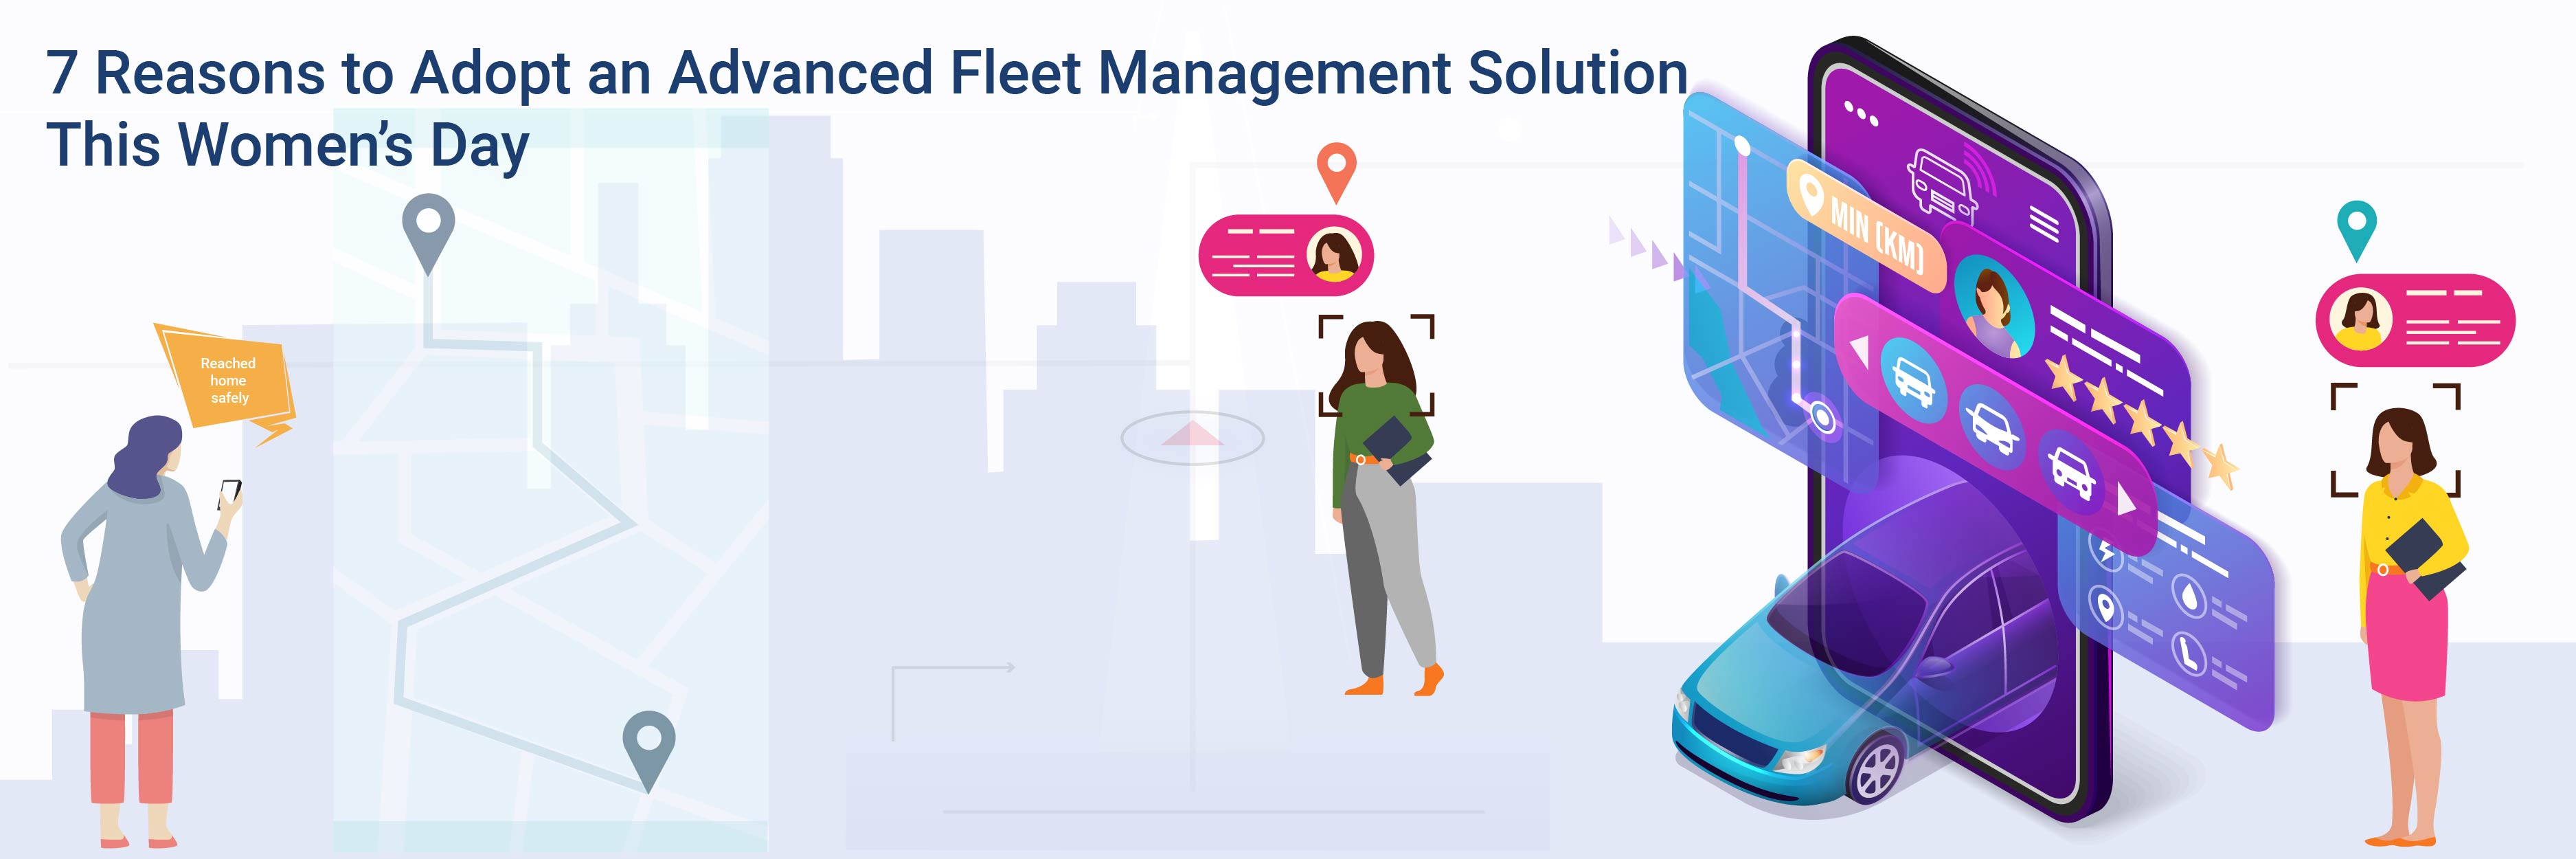 Seven-Reasons-to-Adopt-an-Advanced-Fleet-Management-Solution-This-Womens-Day